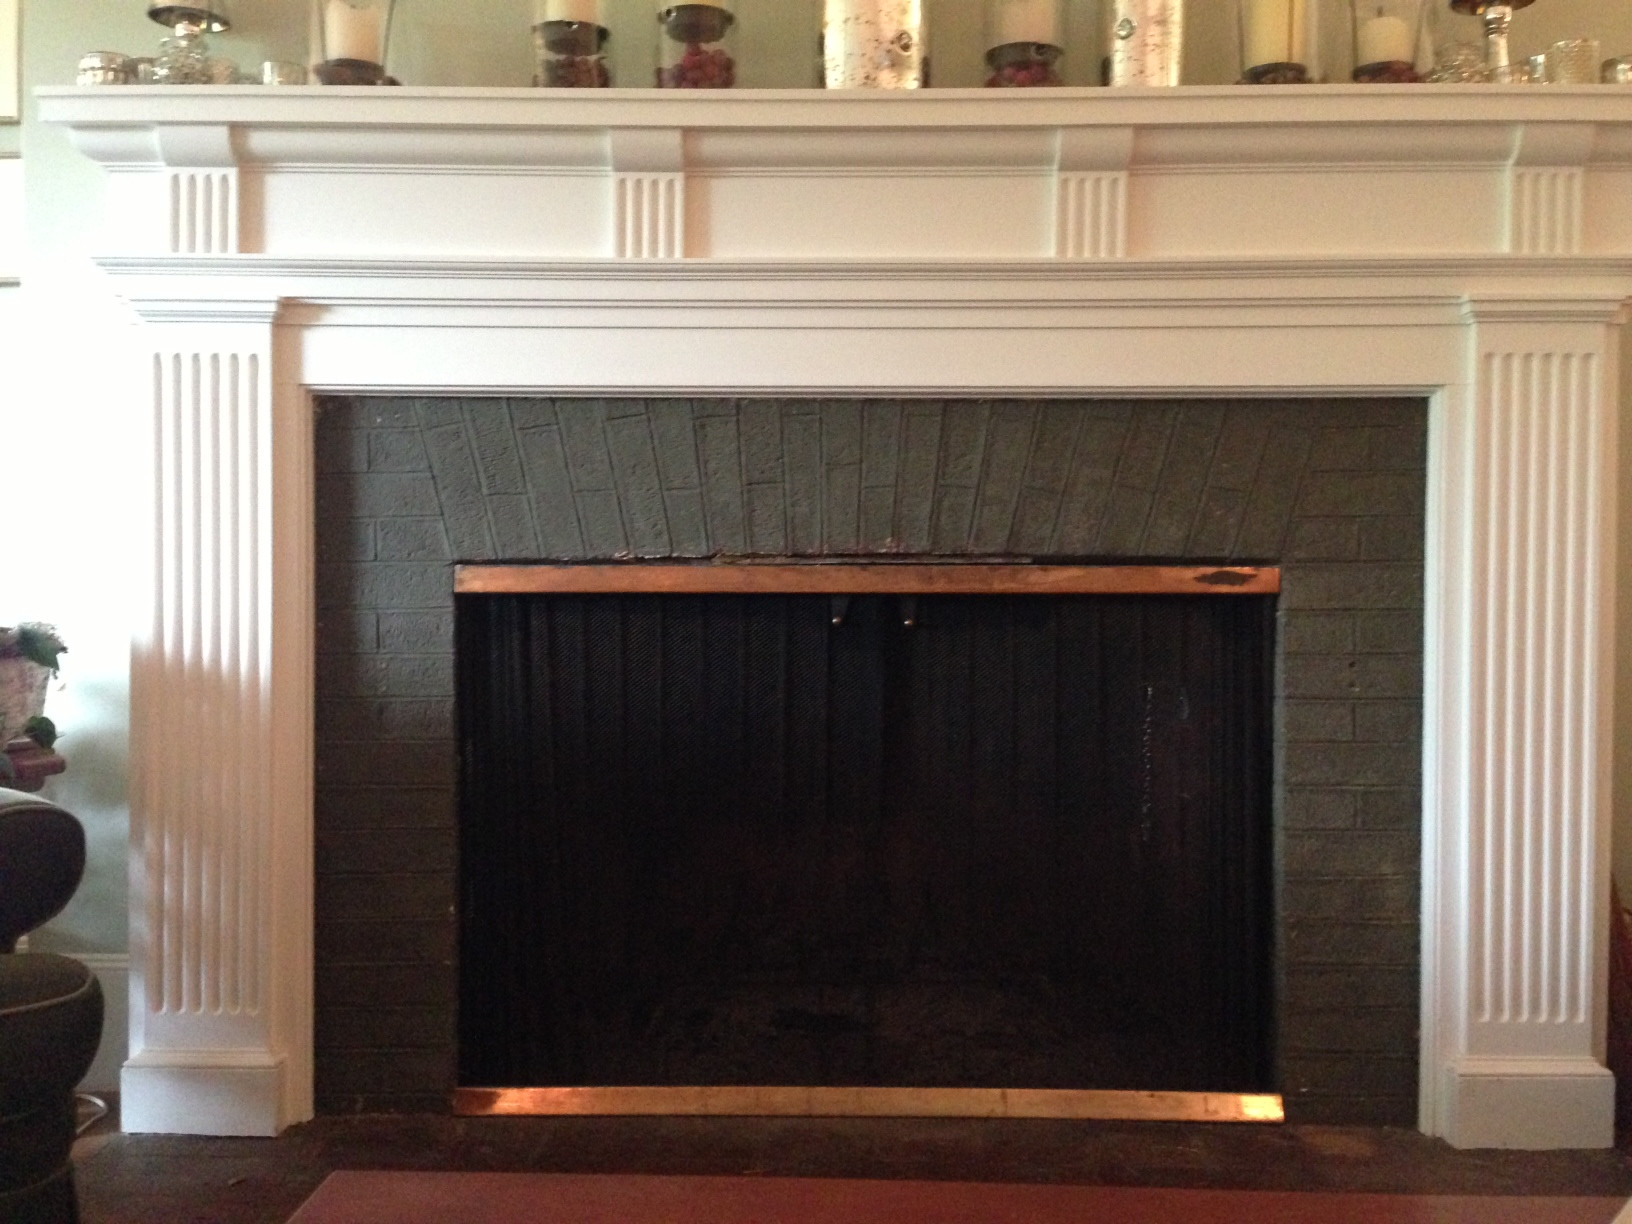 How Can I Add Tile To My Fireplace Home Improvement